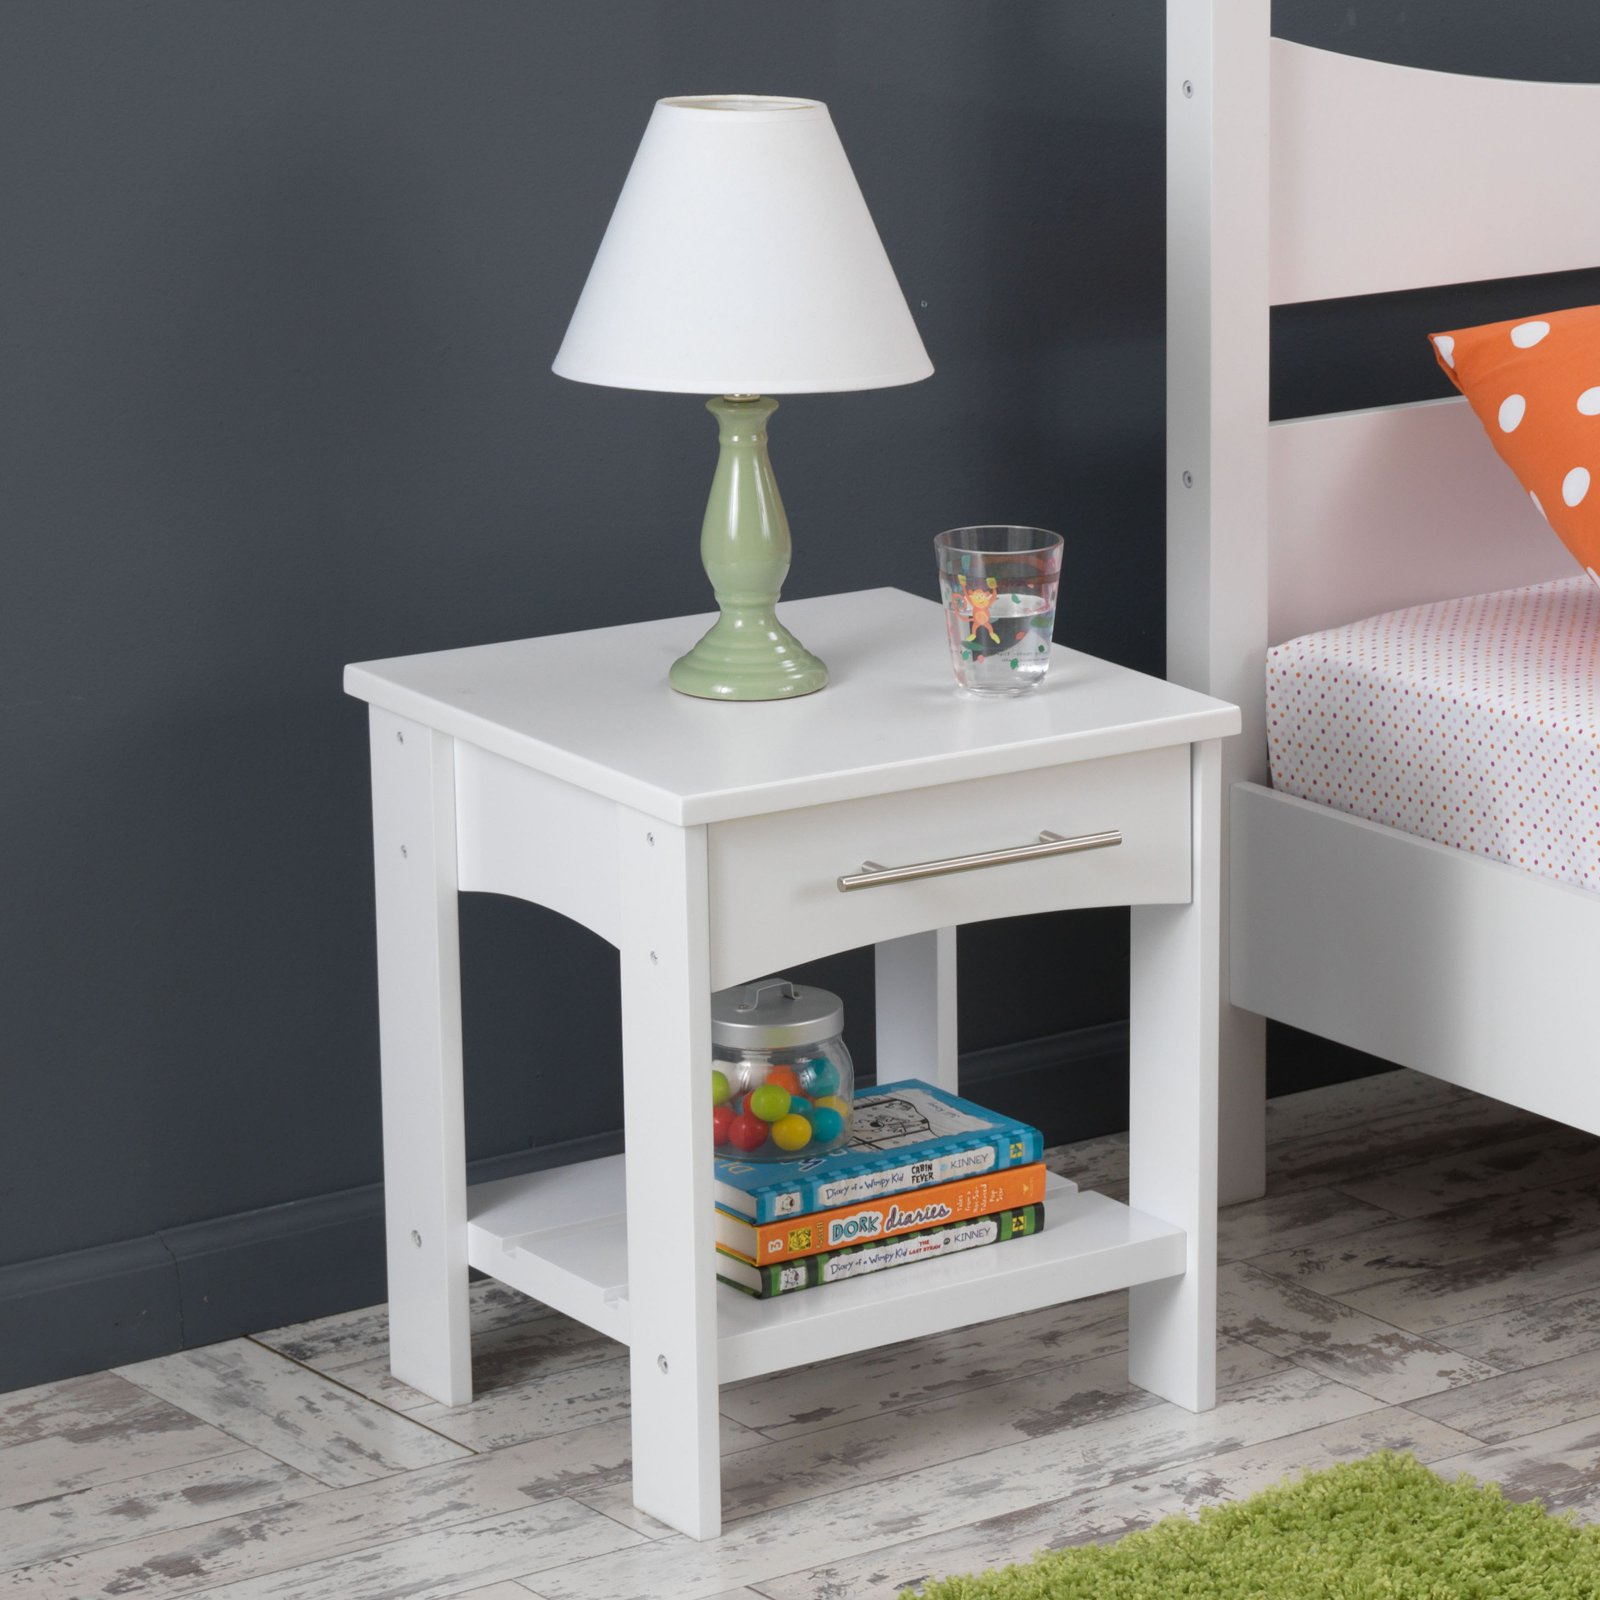 KidKraft Addison Toddler Side Table White 76272 by